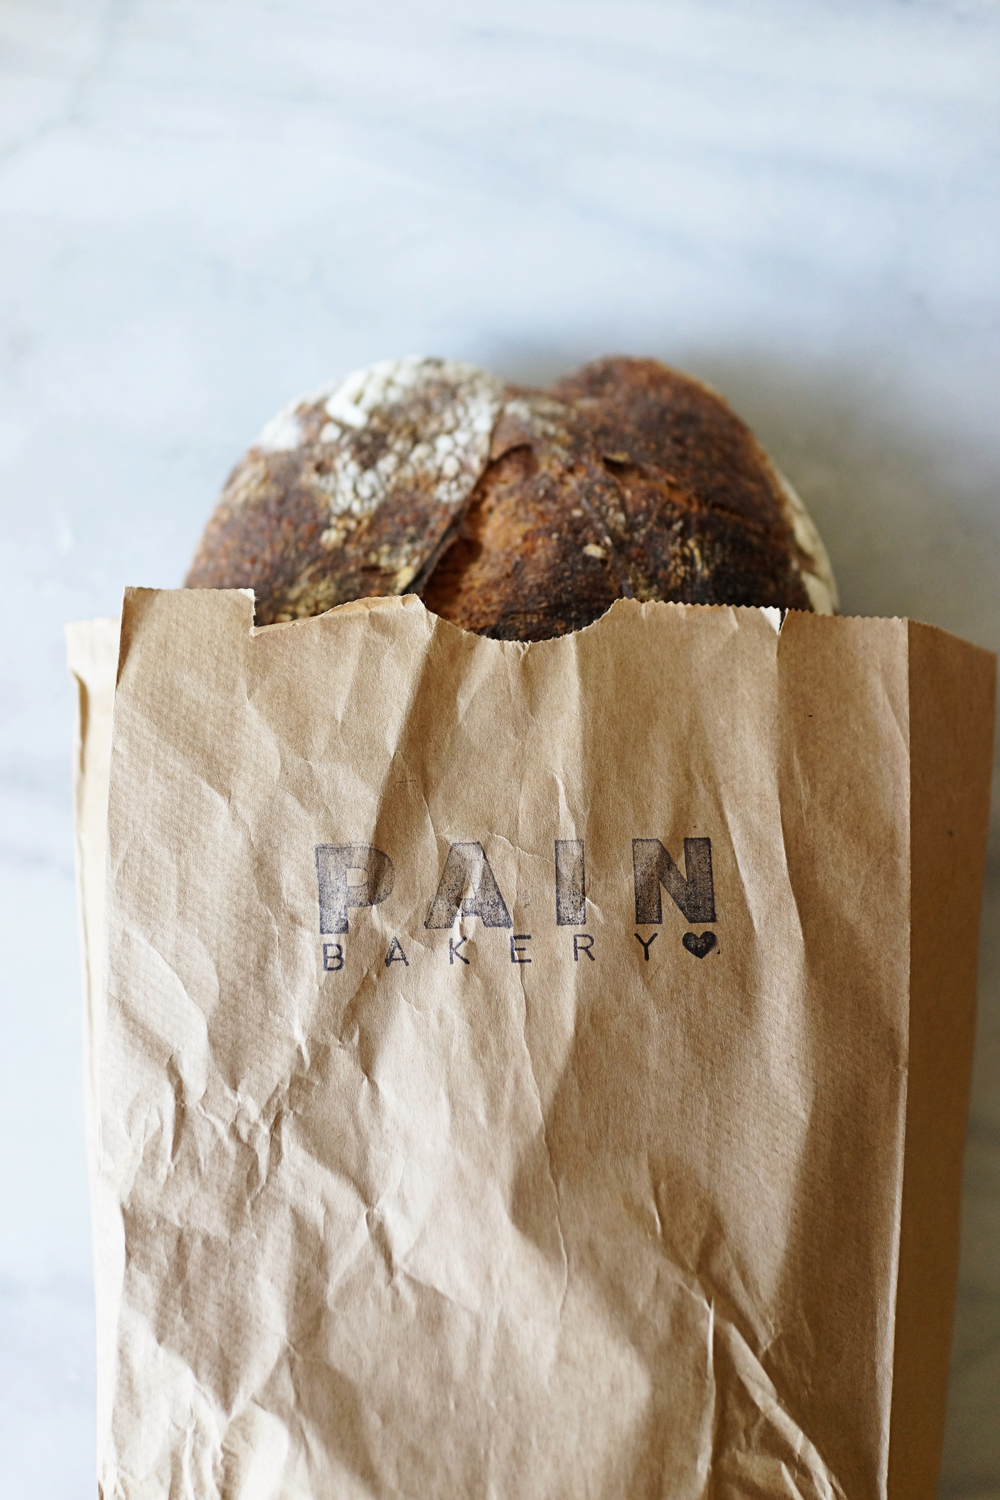 Favorites: Pain Bakery  /  www.goodonpaperdesign.com/blog/favorites-pain-bakery  /  @good_on_paper